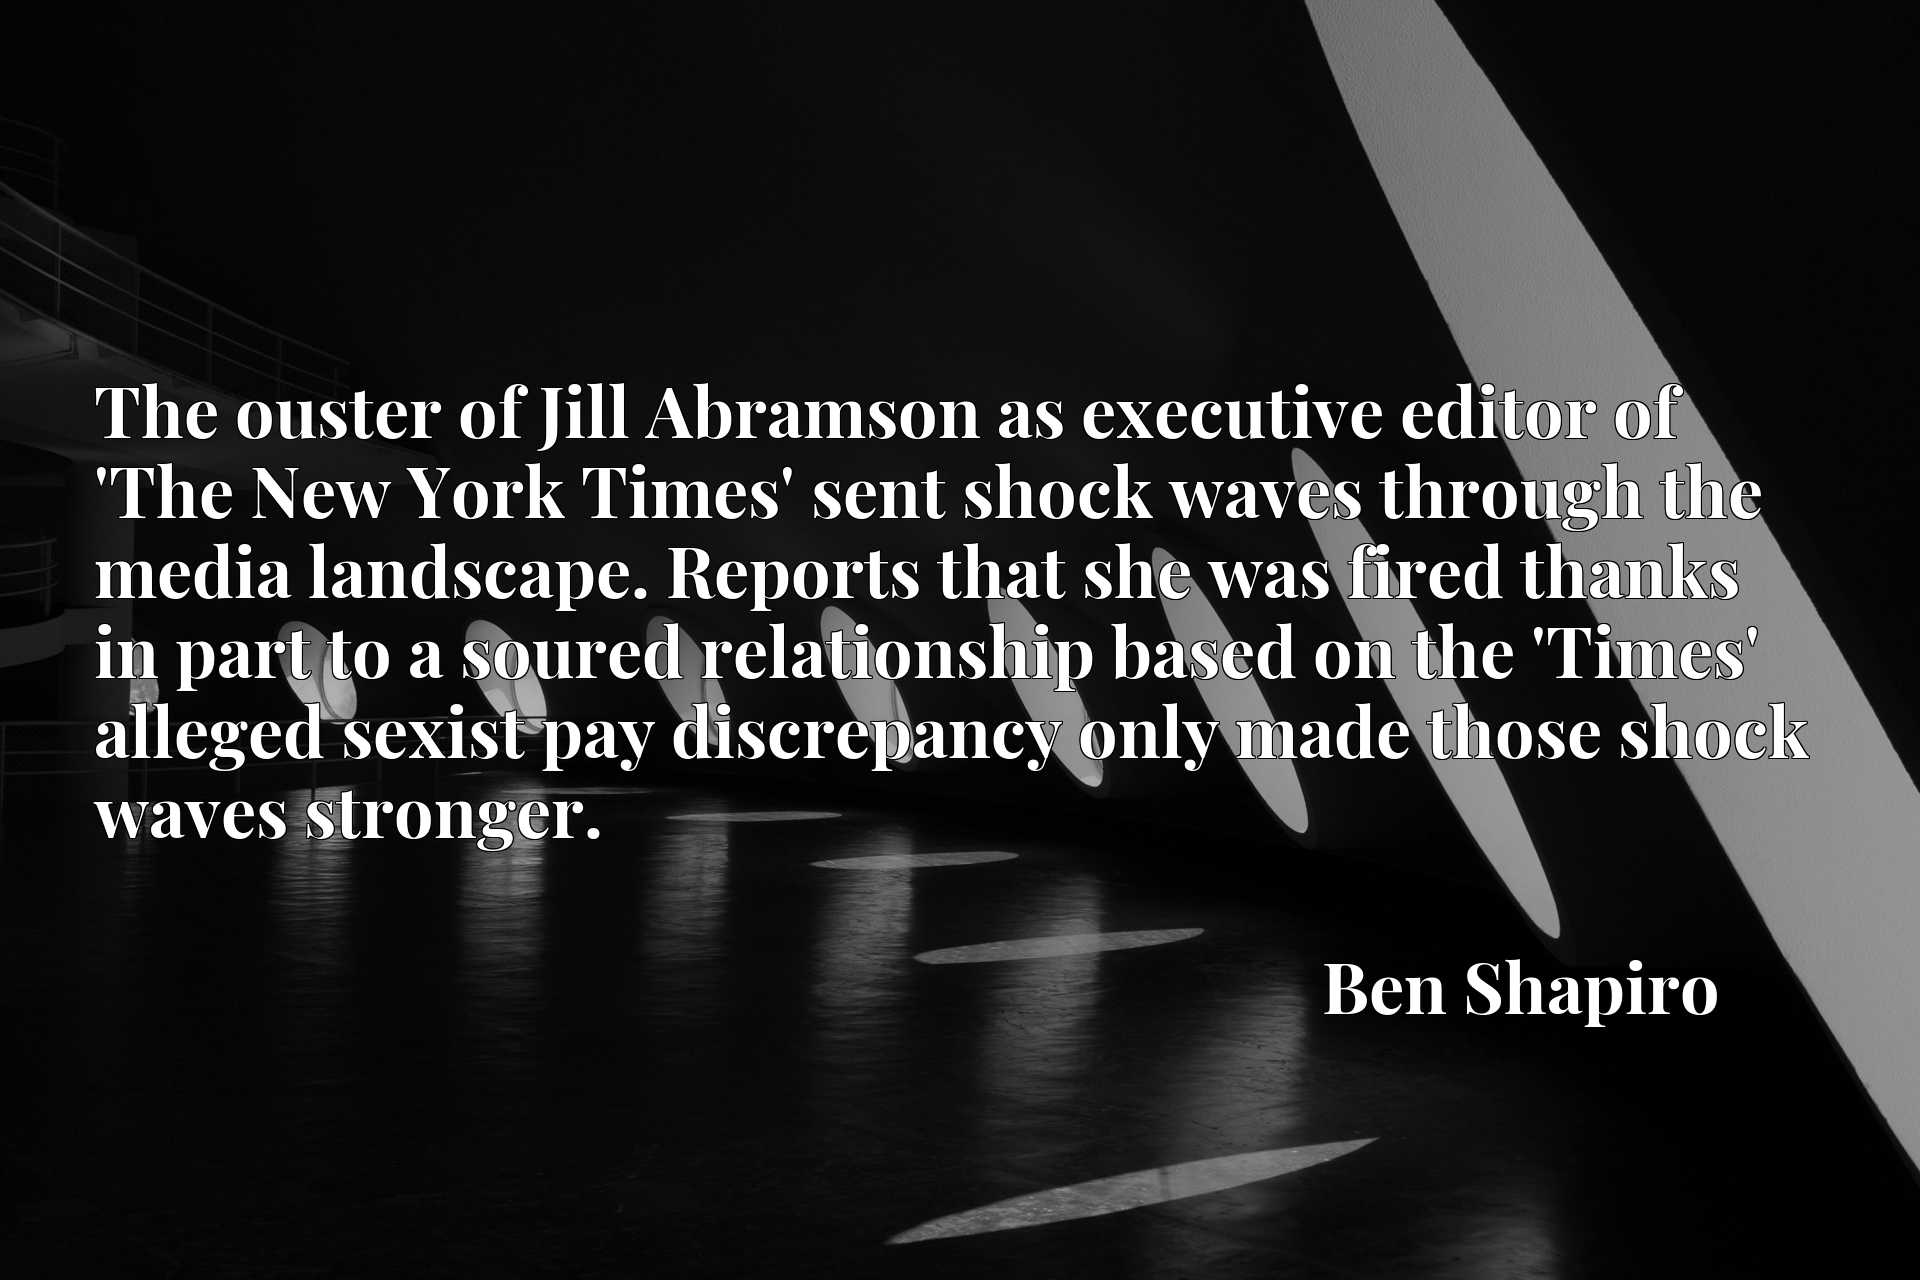 The ouster of Jill Abramson as executive editor of 'The New York Times' sent shock waves through the media landscape. Reports that she was fired thanks in part to a soured relationship based on the 'Times' alleged sexist pay discrepancy only made those shock waves stronger.